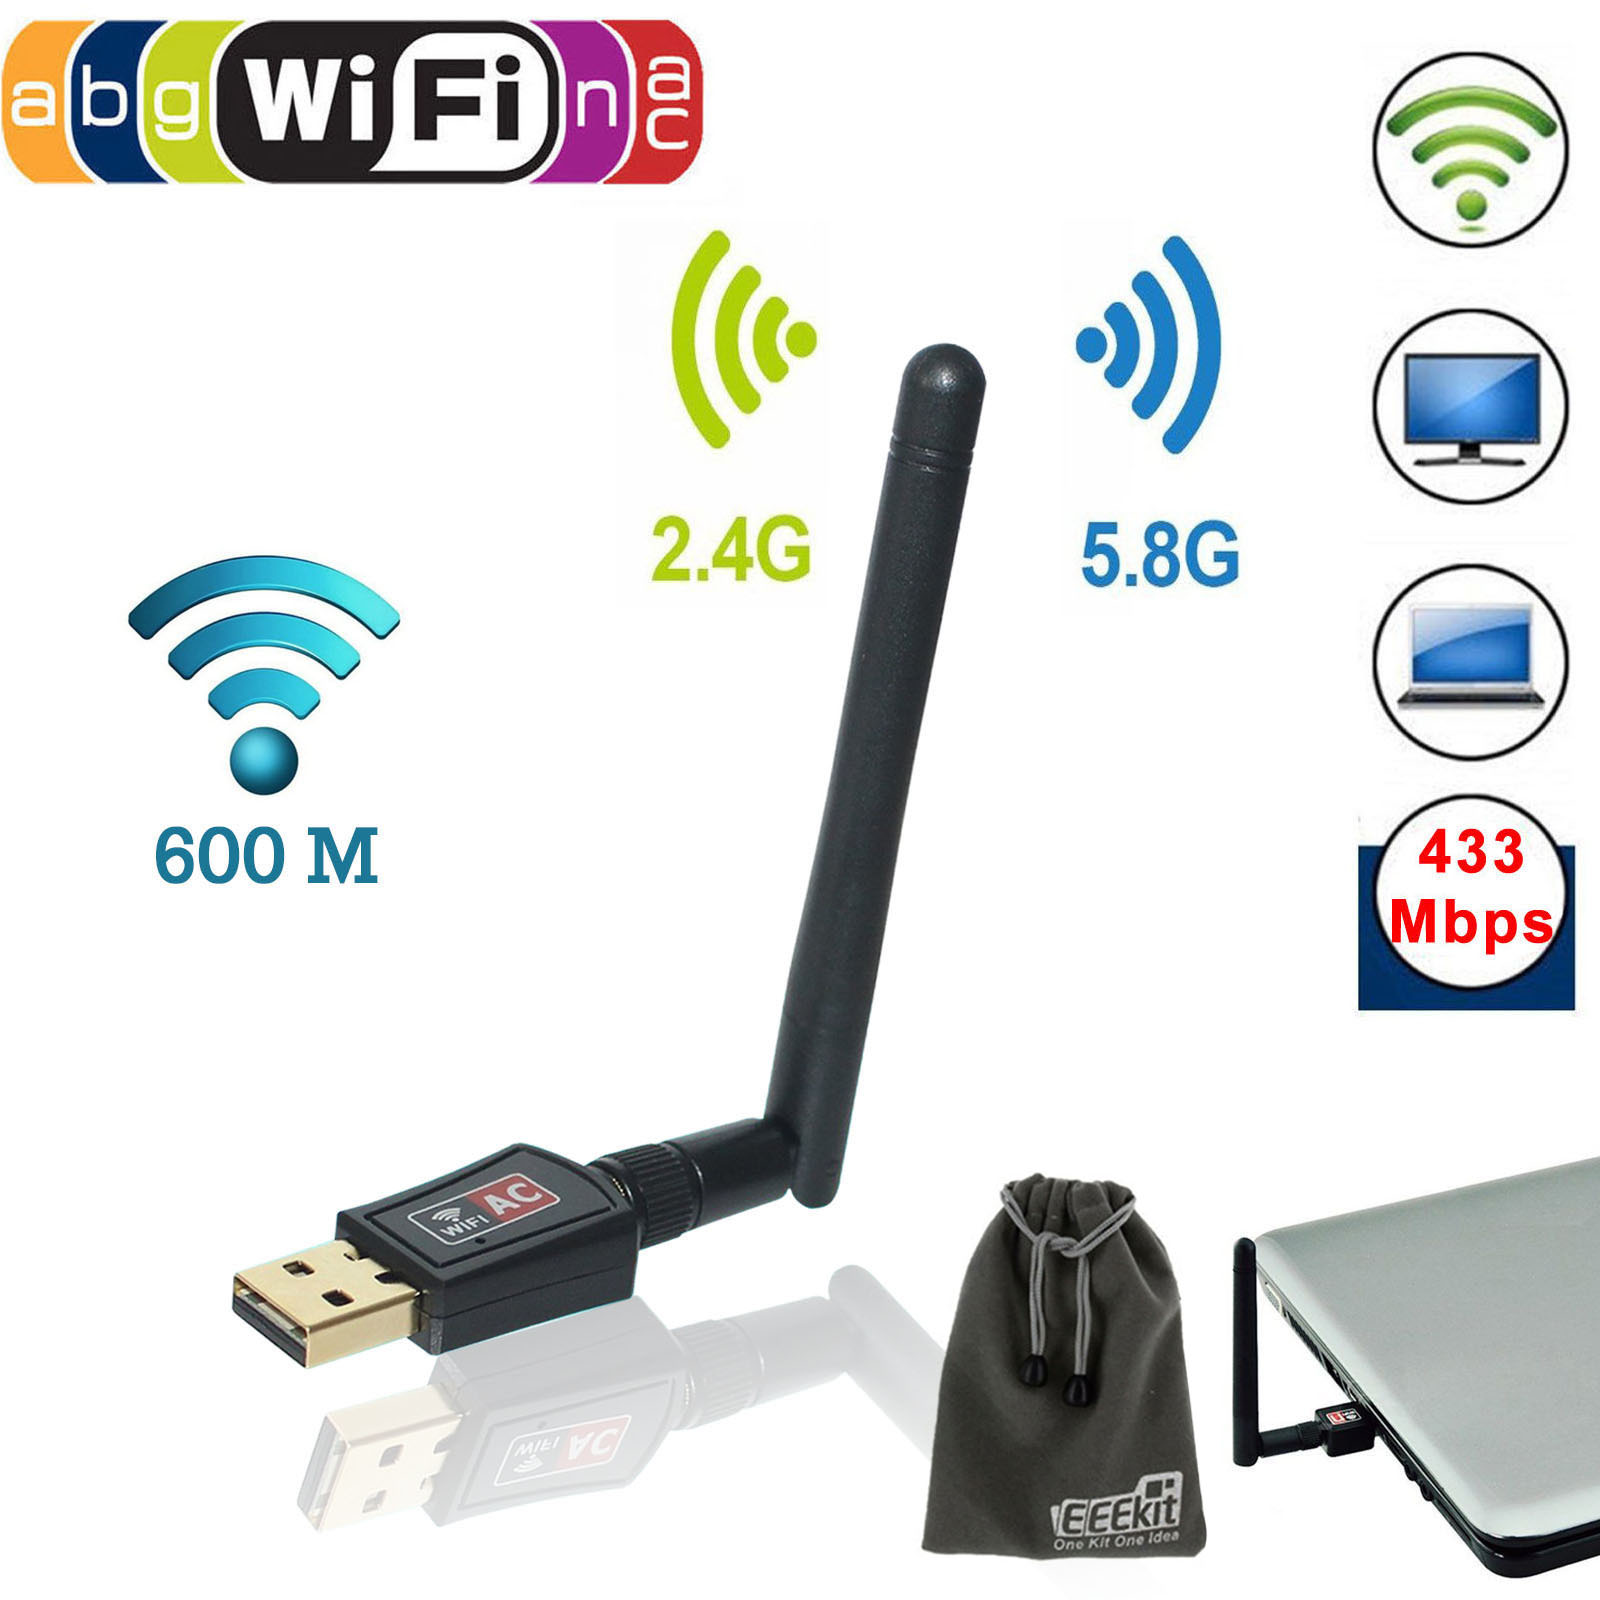 EEEKit USB Wifi Lan Adapter 600Mbps Dual Band 5GHz/2.4GHz 802.11ac w/ Antenna Wireless Network Dongle Booster Card for PC Laptop